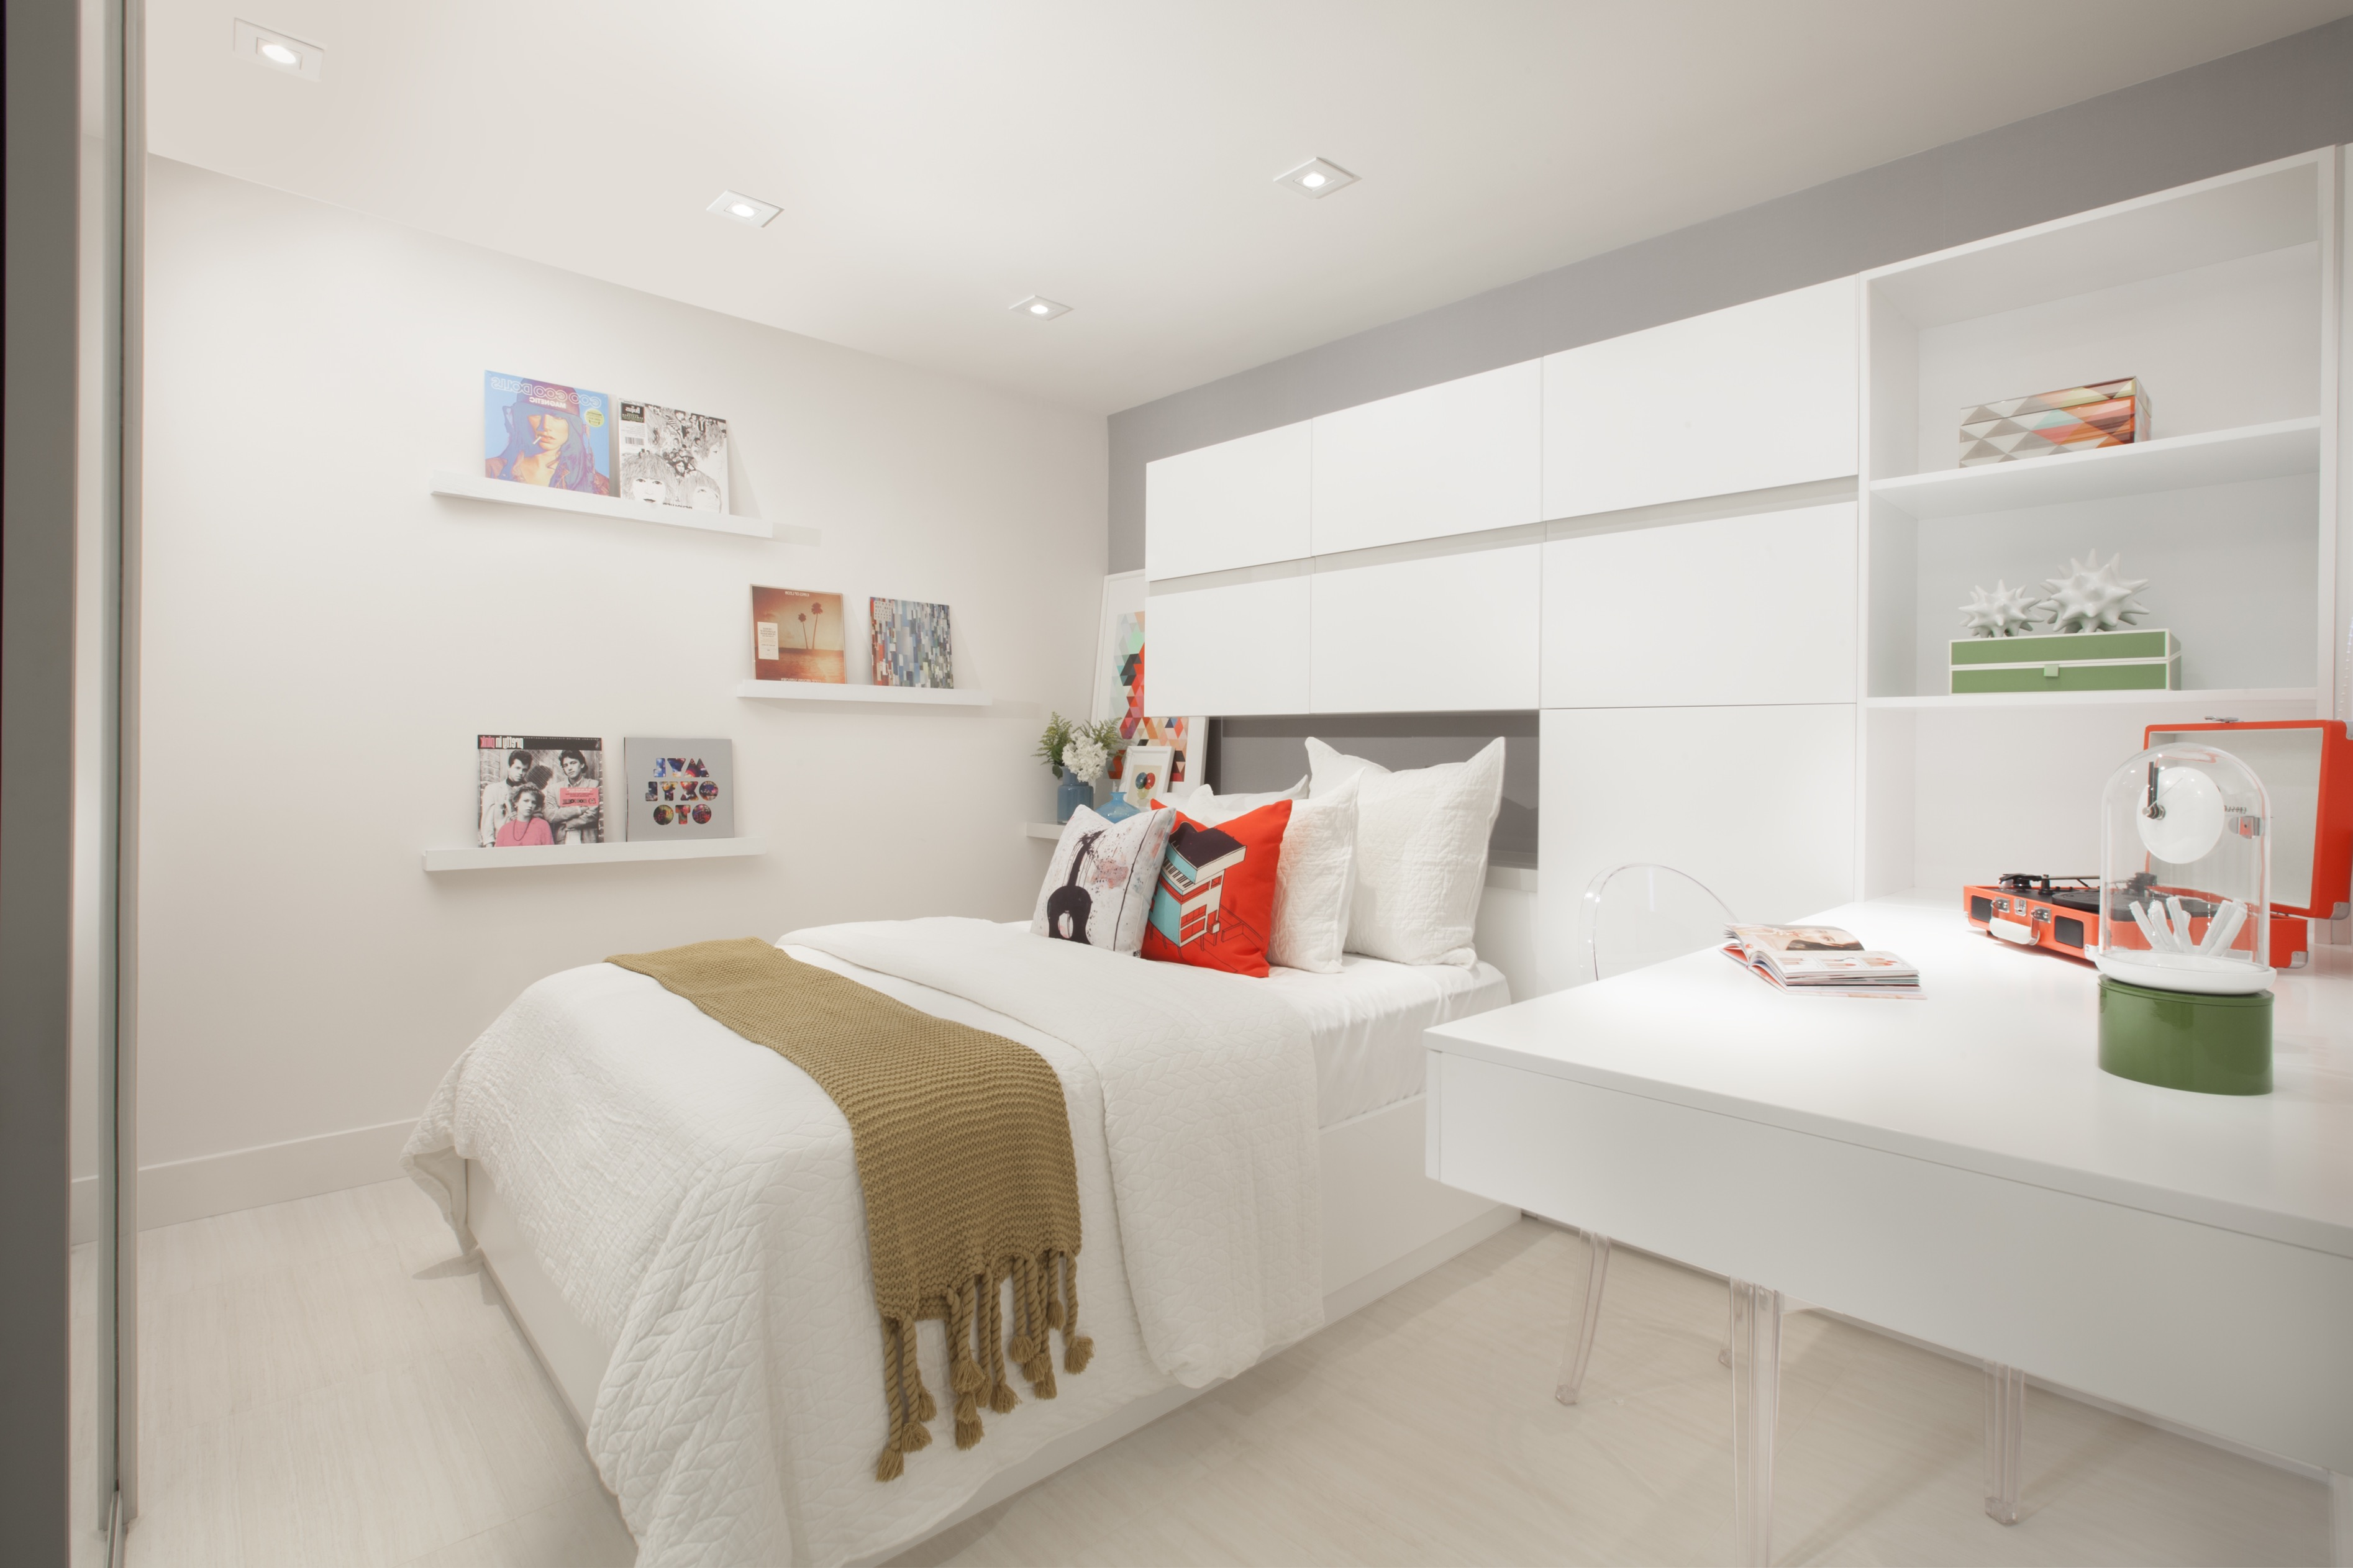 Modern Bedroom With Built In Wardrobe And Flat Cabinets (Image 11 of 15)